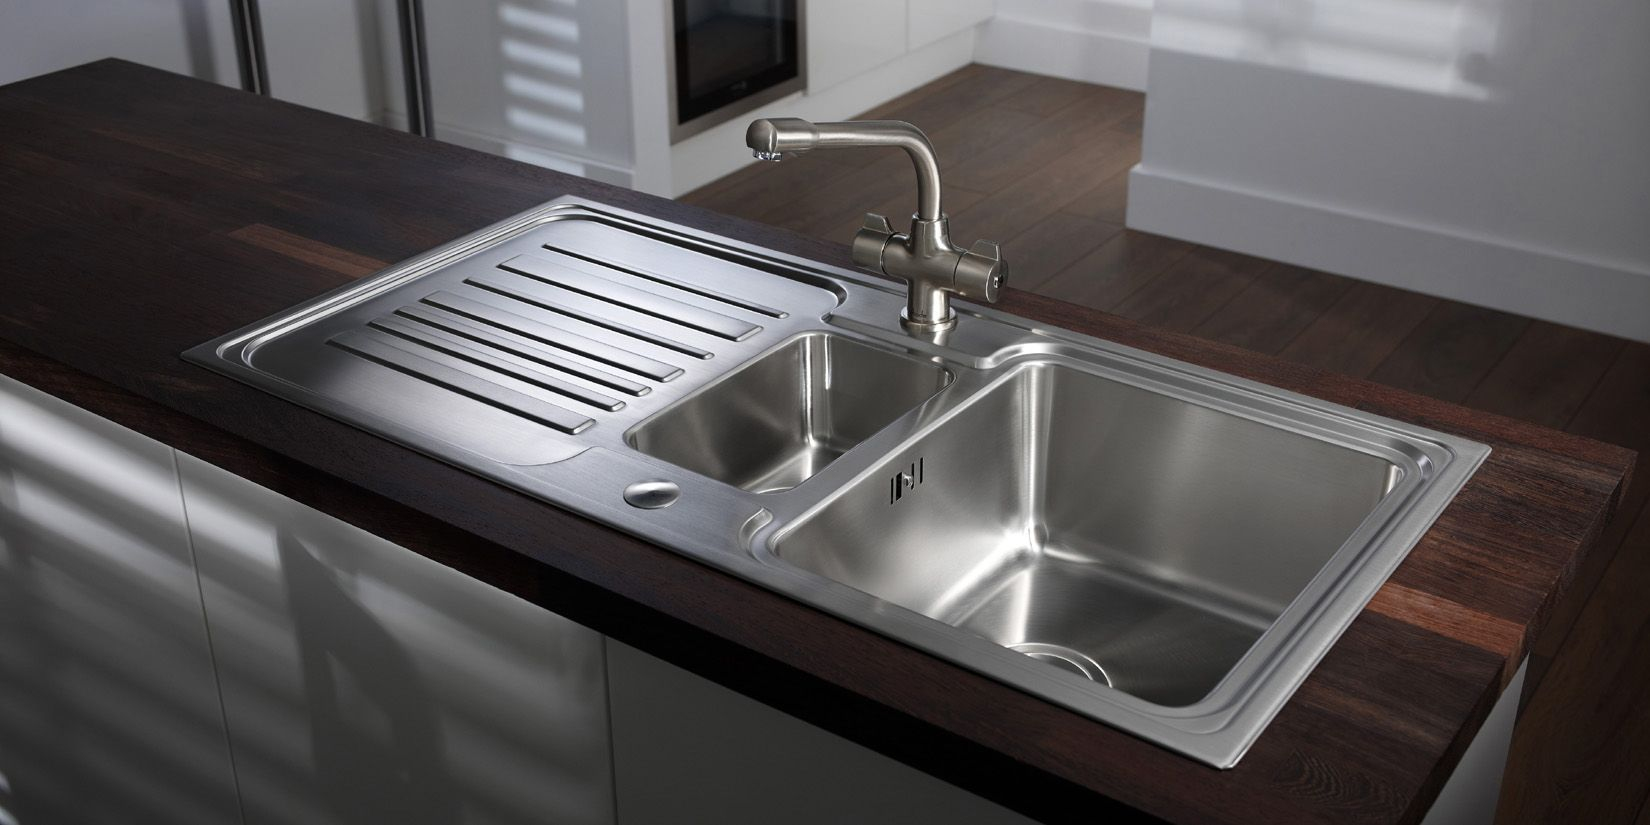 kitchen vintage kitchen sink design two square small big  - silver stainless kitchen sinks with white cabinet and brown lacquerecountertop style for contemporary kitchen design and decor marvellousscenic alumunium